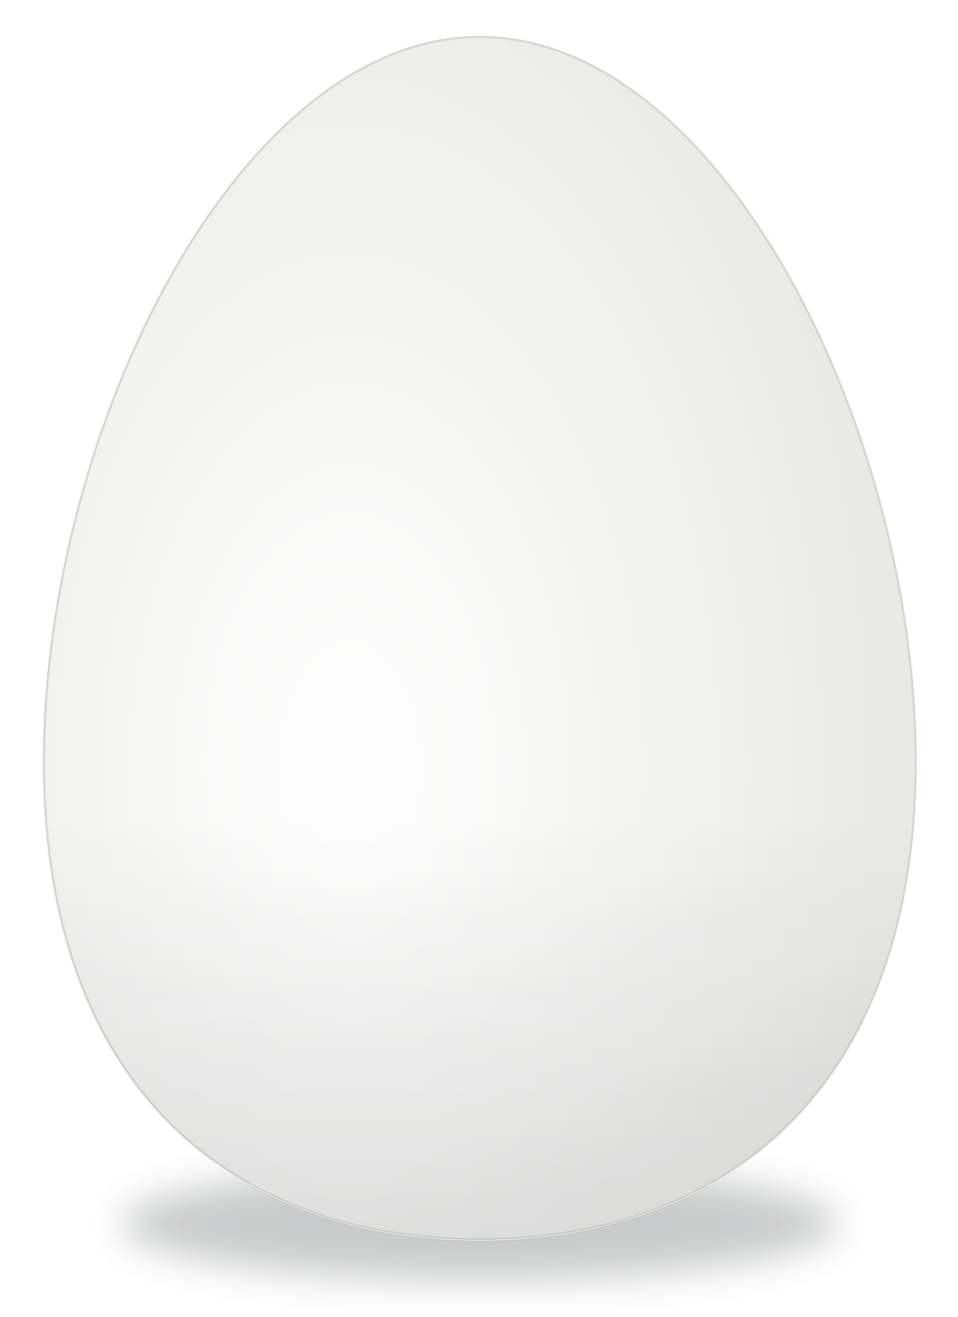 Eggs PNG image, free download PNG pictures of eggs.